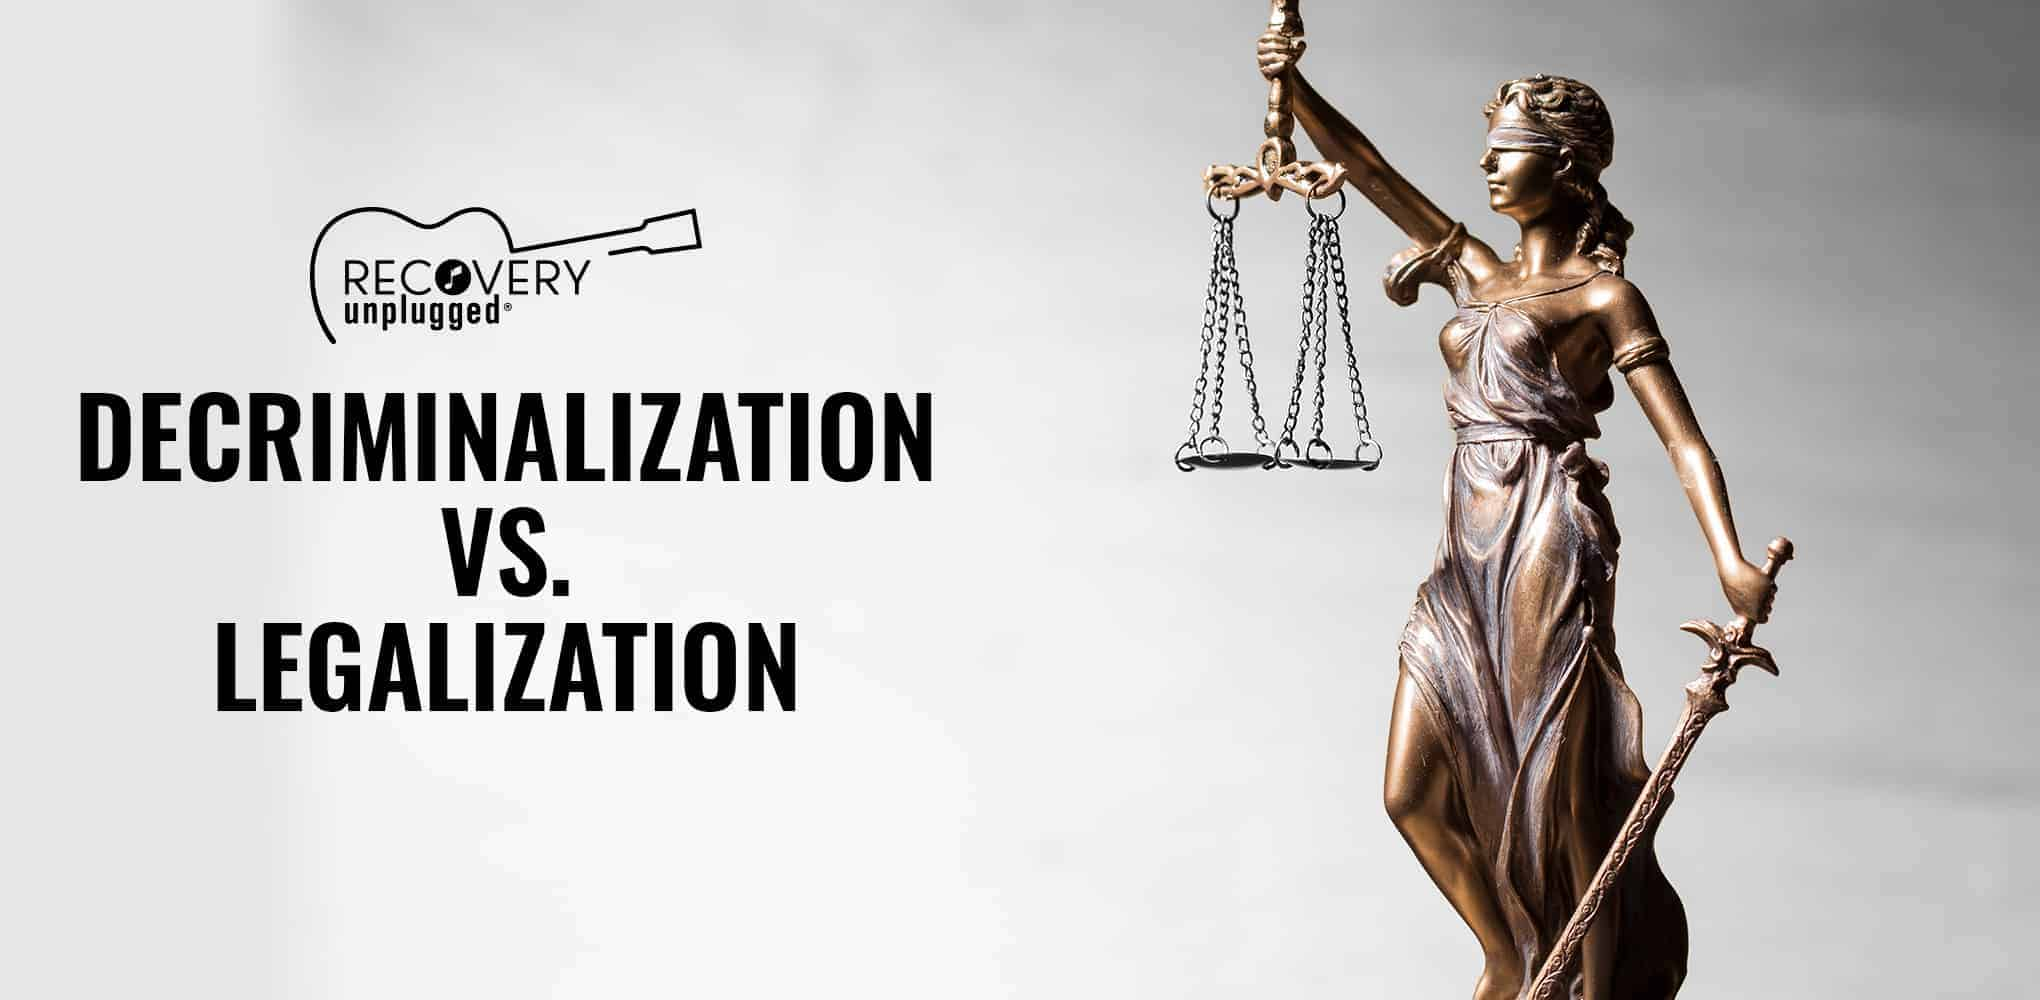 Legalization and Decriminalization: What's the Difference?